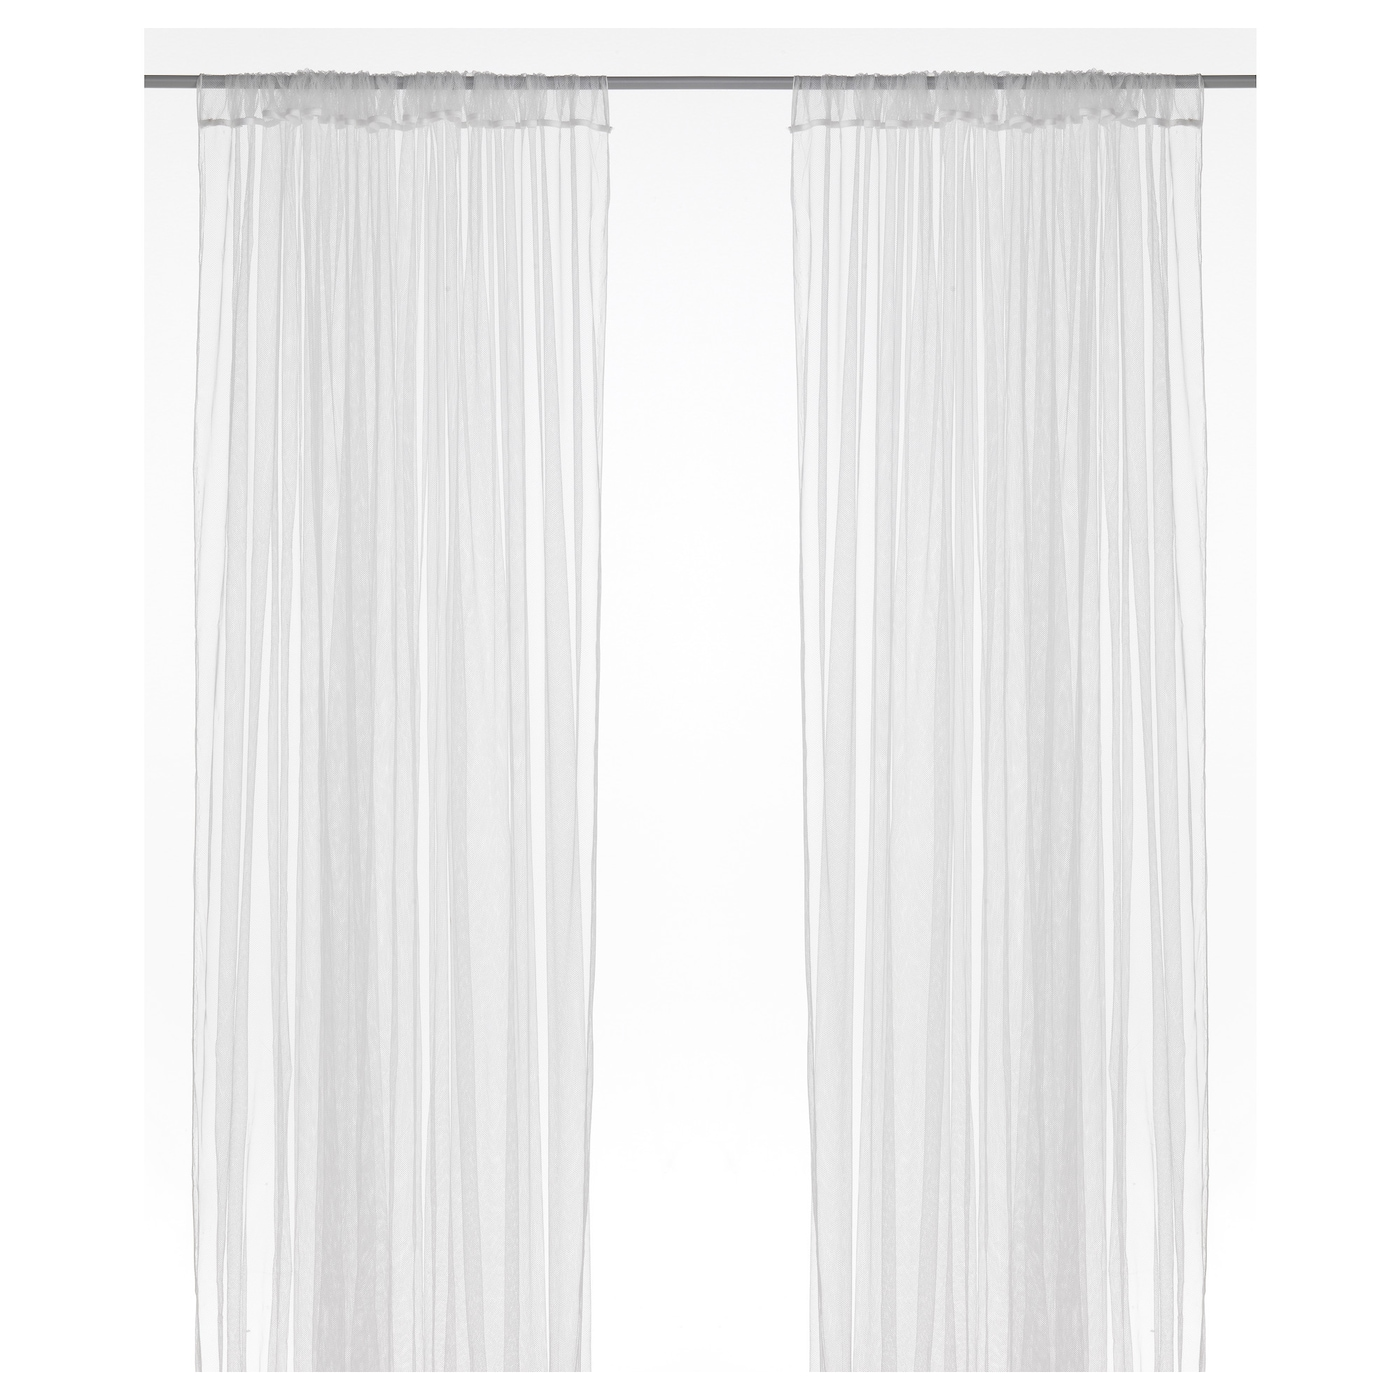 Ikea Lill Net Curtains 1 Pair Can Be Easily Cut To The Desired Length Without